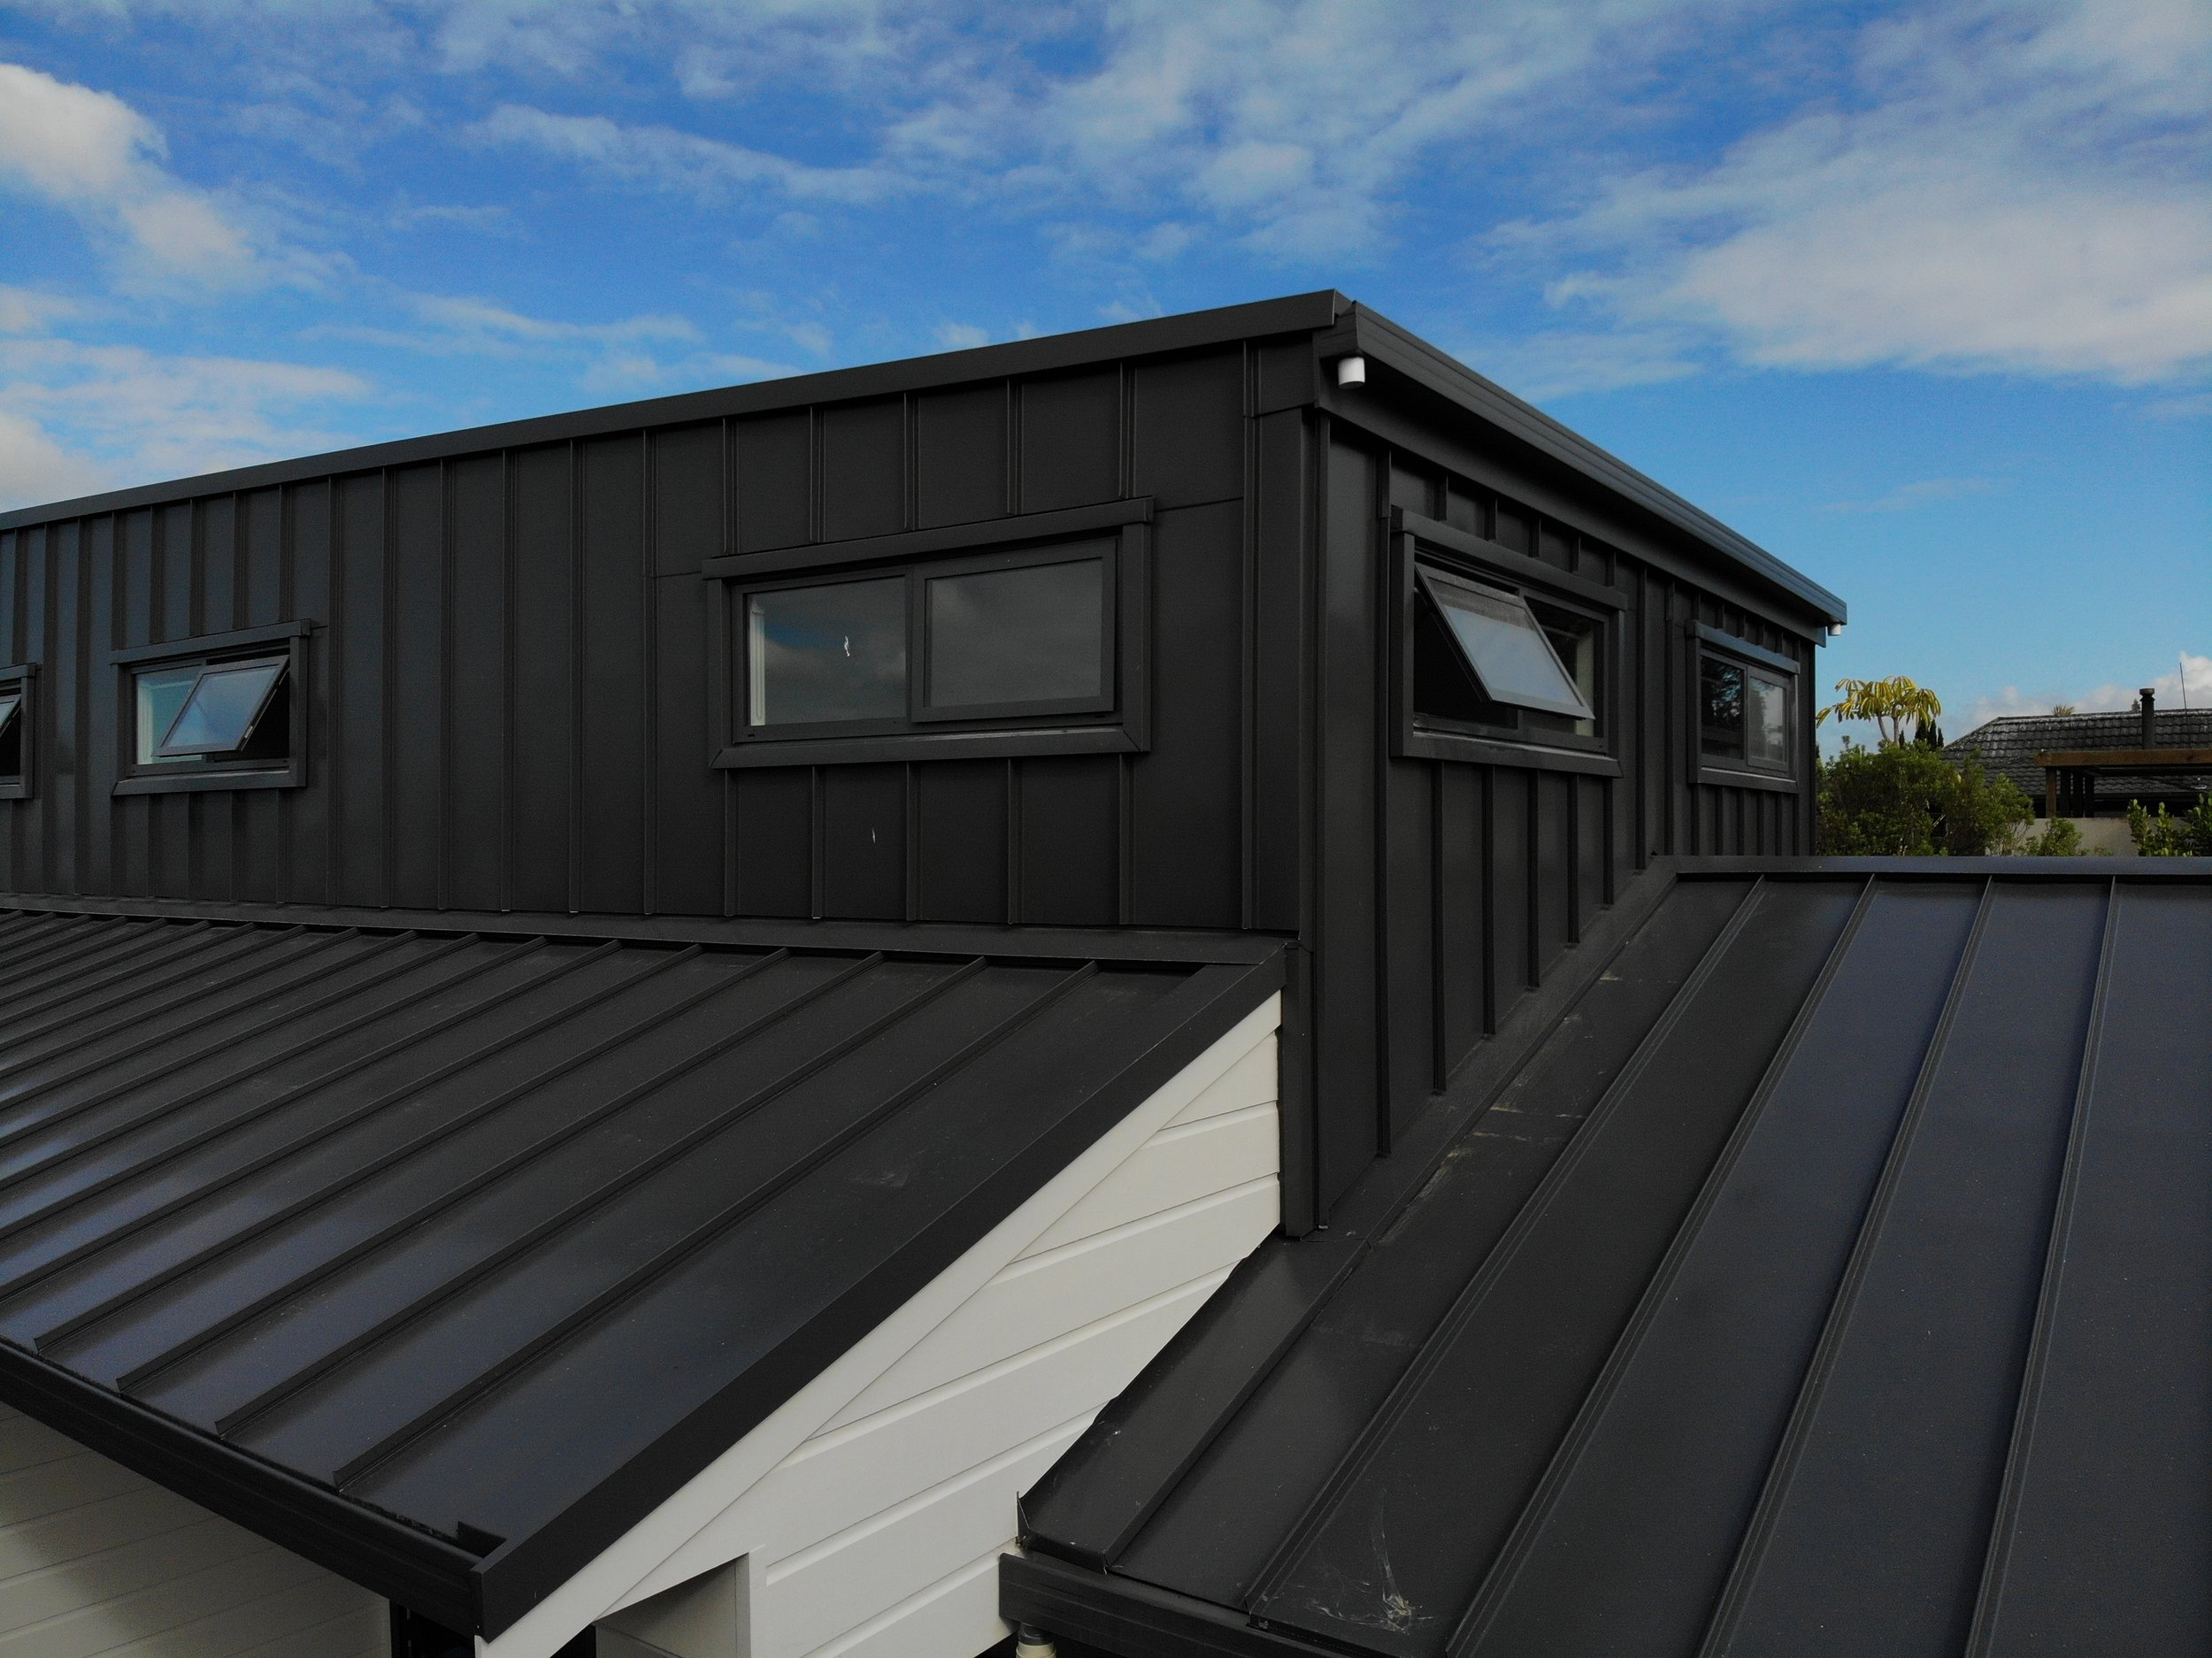 Our Steel Roofing And Cladding Profile Options The Roofing Store Best Roofing Supplier All Over New Zealand Roofing Company Auckland Re Roofers Roofing Commercial Roofer New Zealandthe Roofing Store Preparing A Roofing